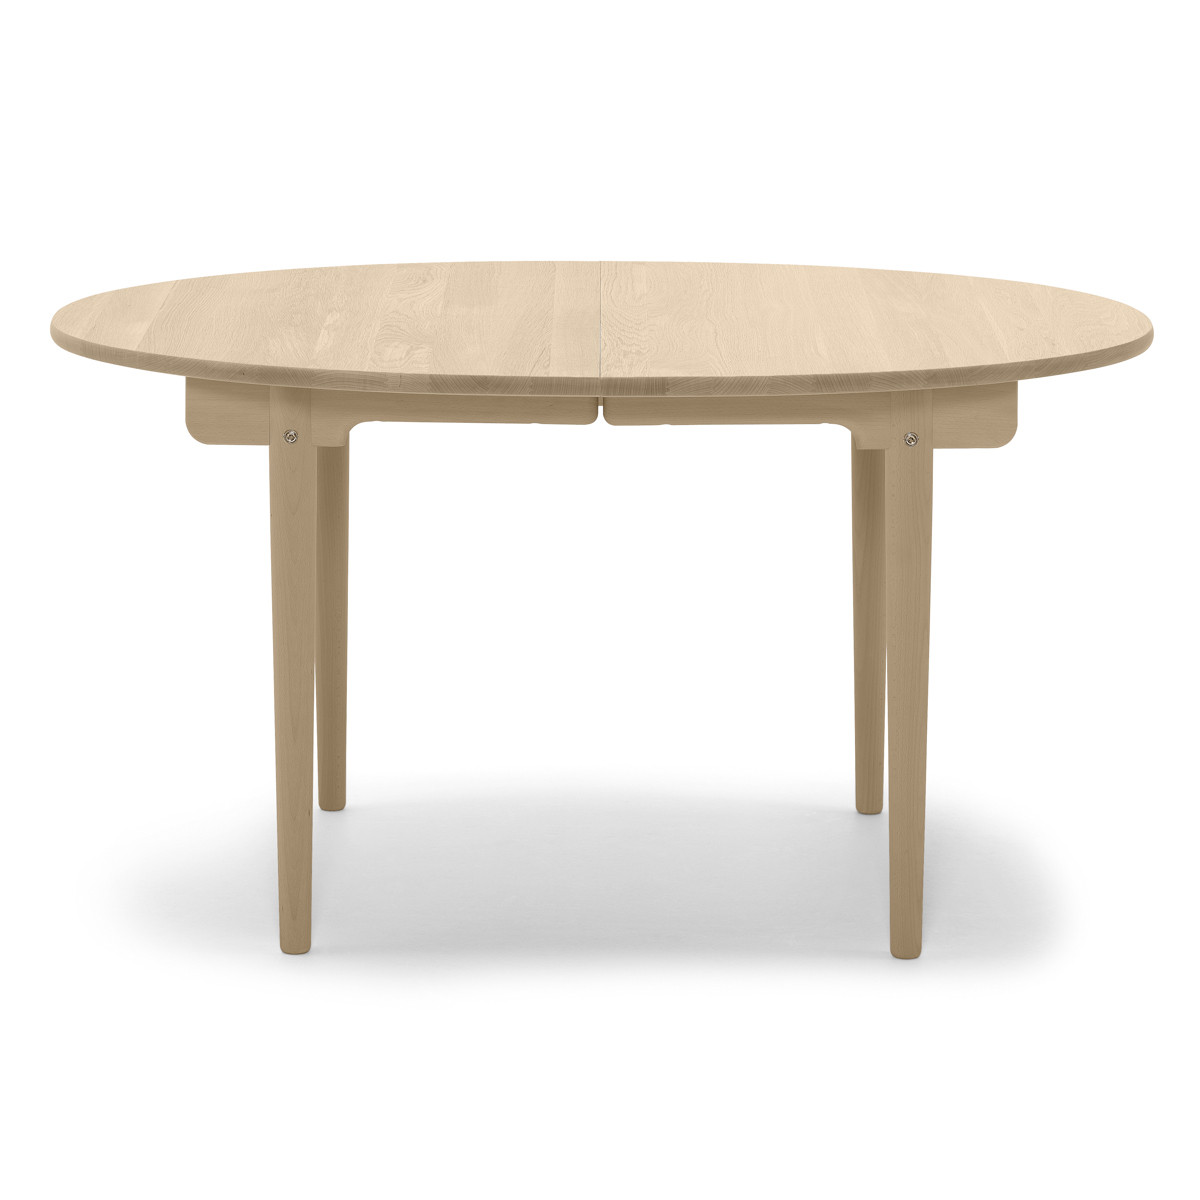 Carl Hansen CH337 Dining Table